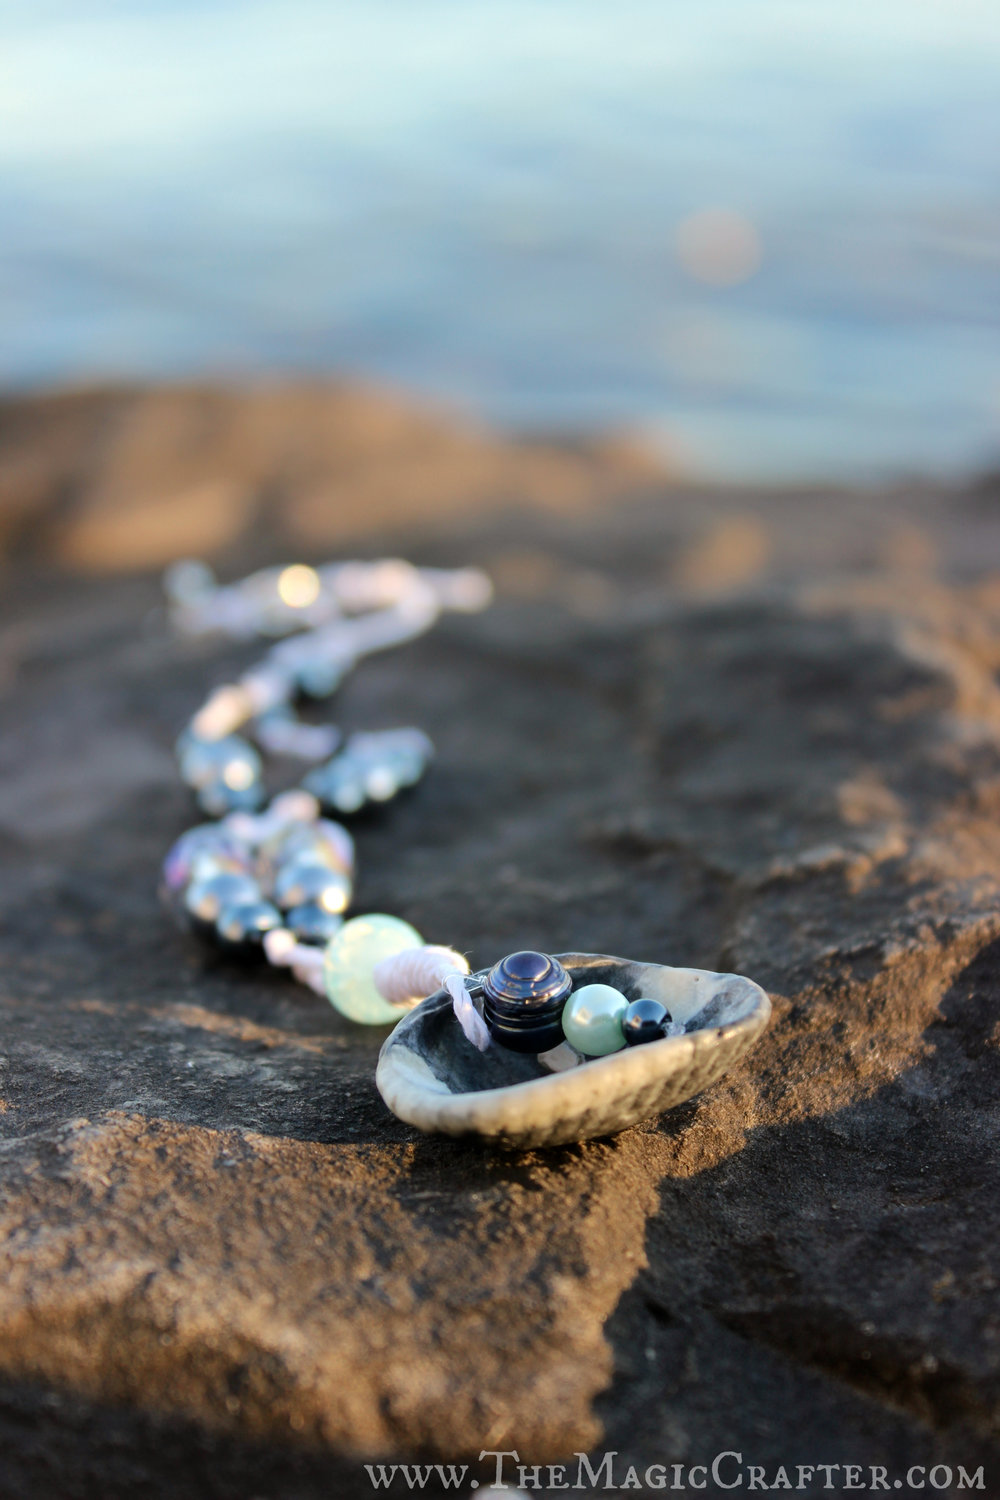 Here the shell necklace is soaking up some of the last of the sun's rays for the day. You can't really tell in this picture here, but the two purple-tinted gem beads that add an accent to the piece sparkle quite brilliantly in the sunlight!